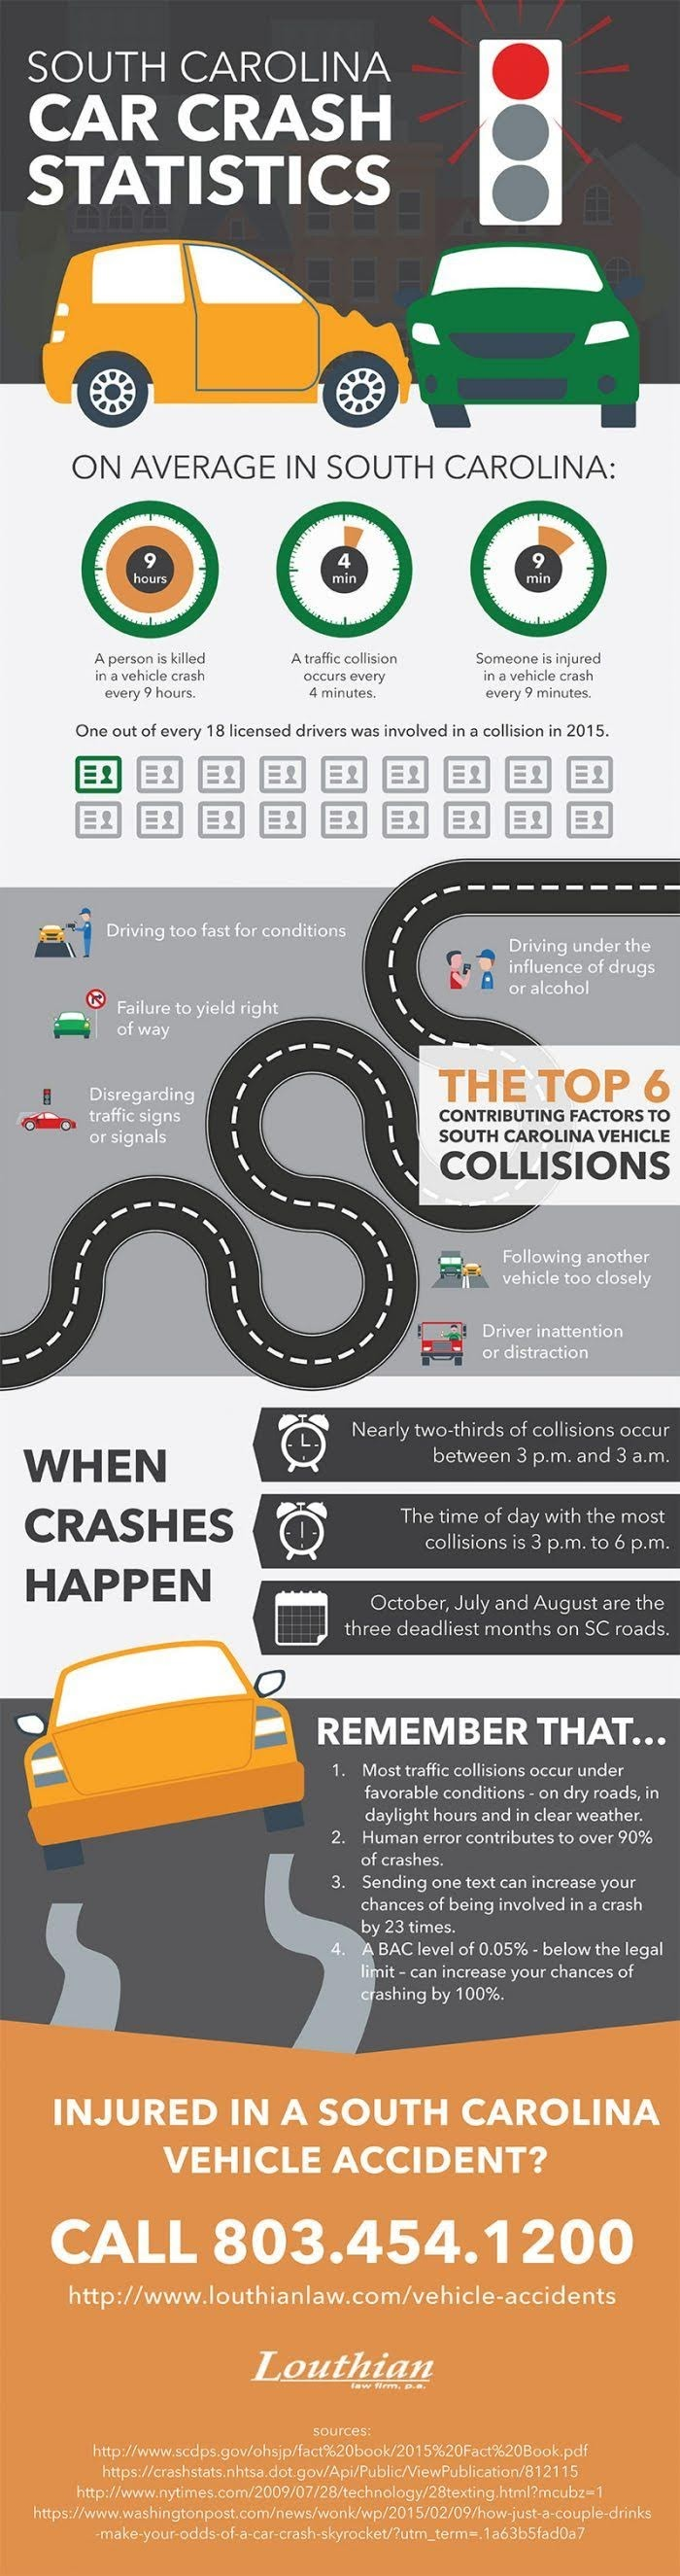 South Carolina Car Crash Statistics #infographic